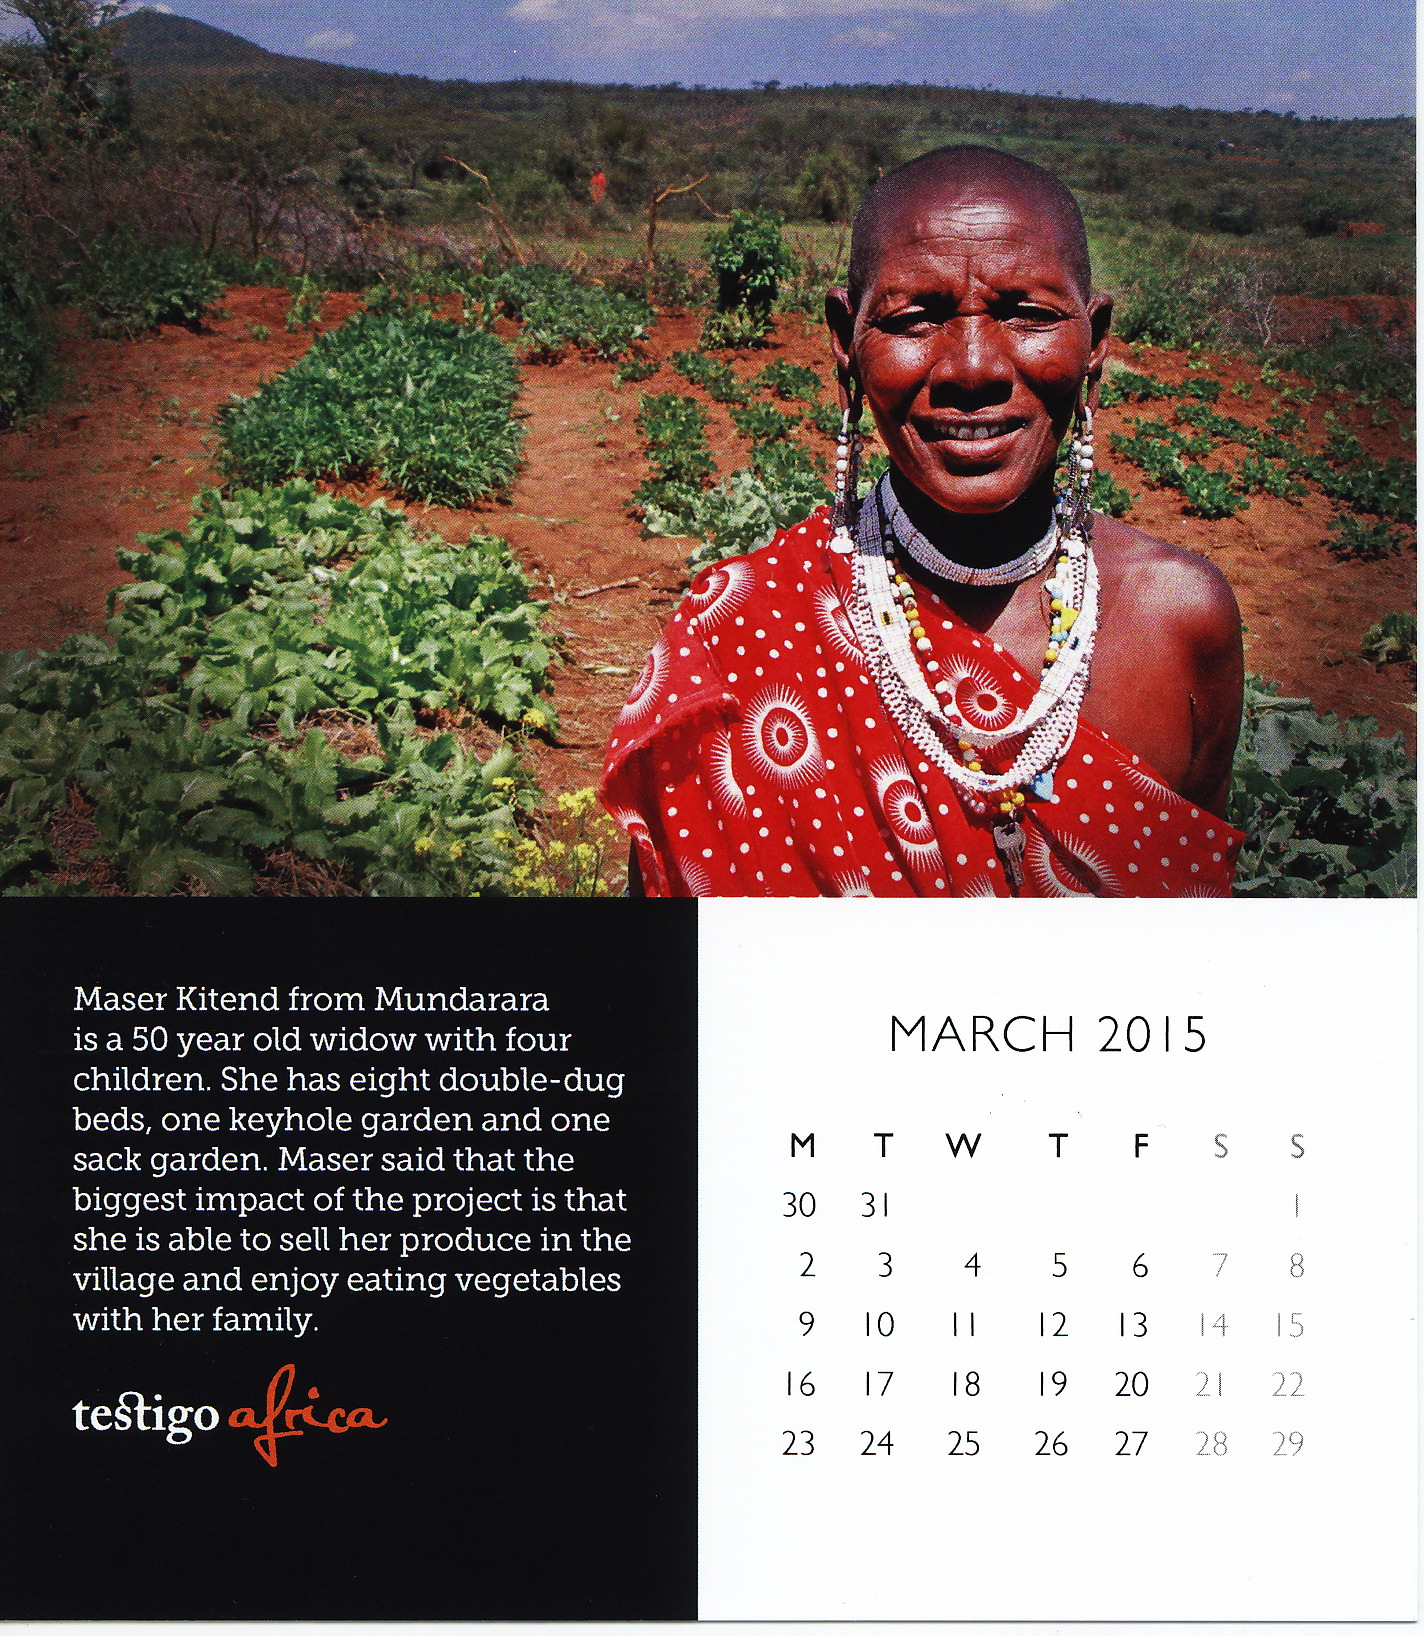 Photo of the 2015 desktop calendar march page